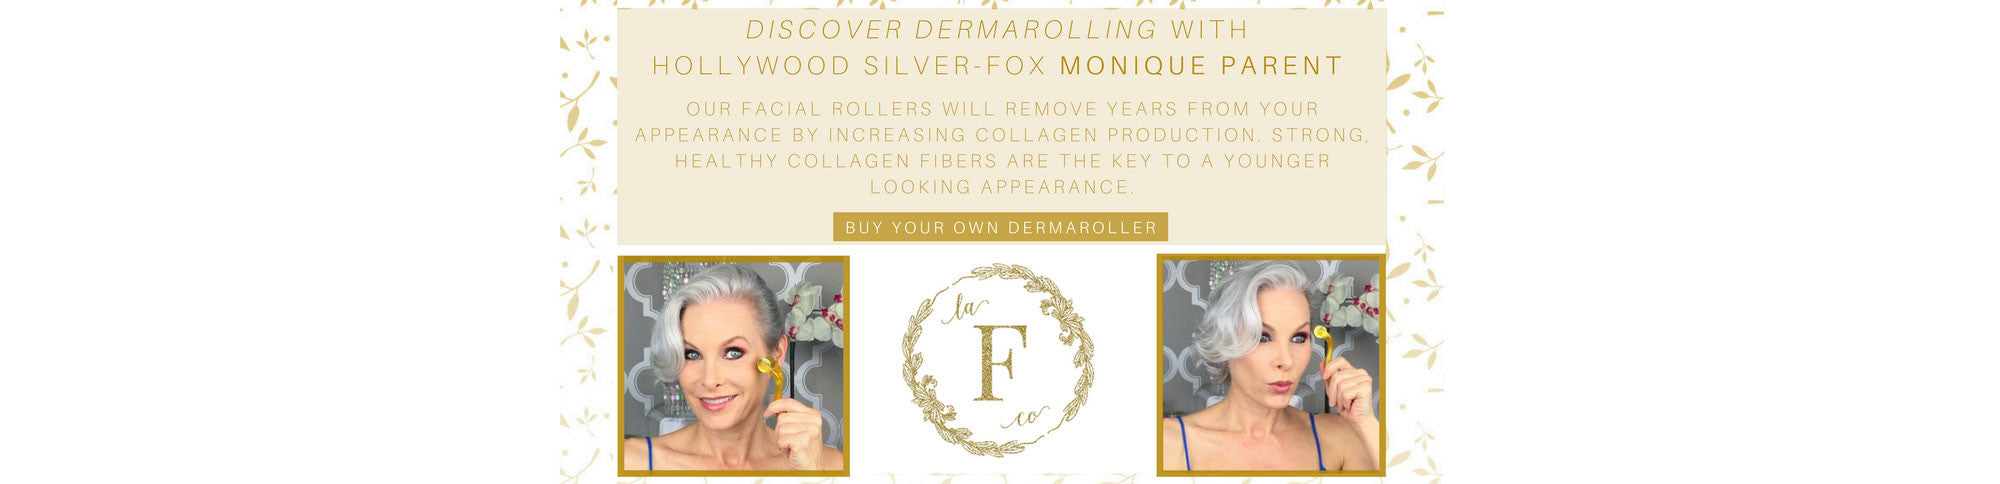 INTRODUCING THE DERMADREAM PREMIUM DERMA ROLLER